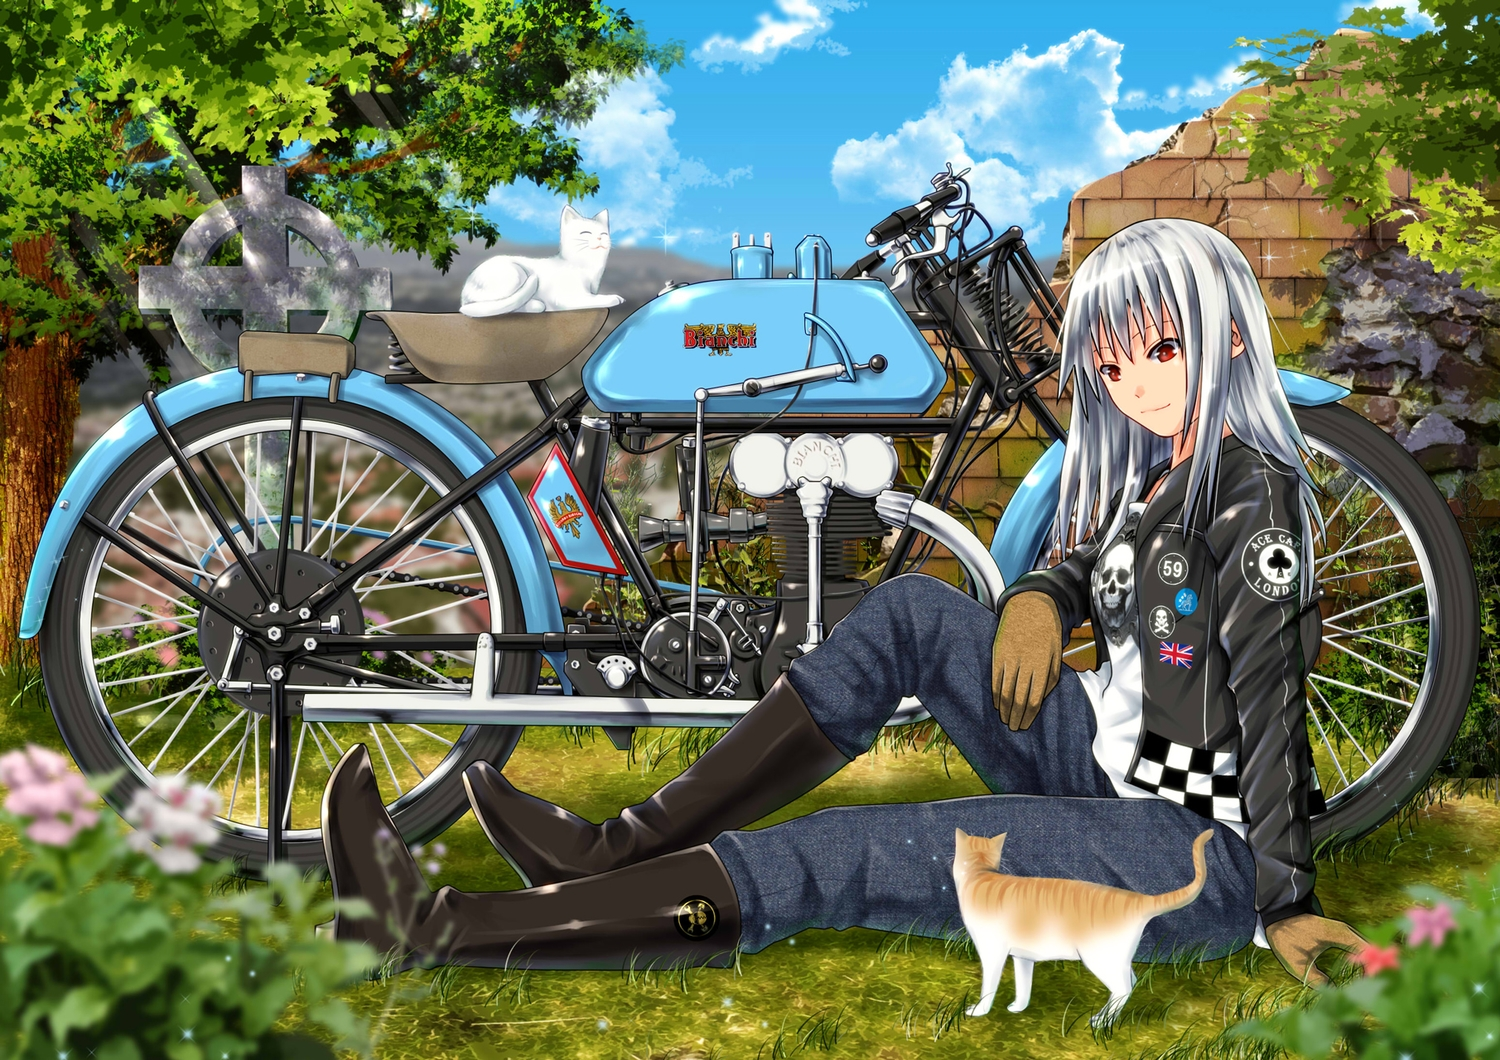 animal ano_hito boots cat clouds cross gloves grass gray_hair long_hair motorcycle original red_eyes ruins sky tree